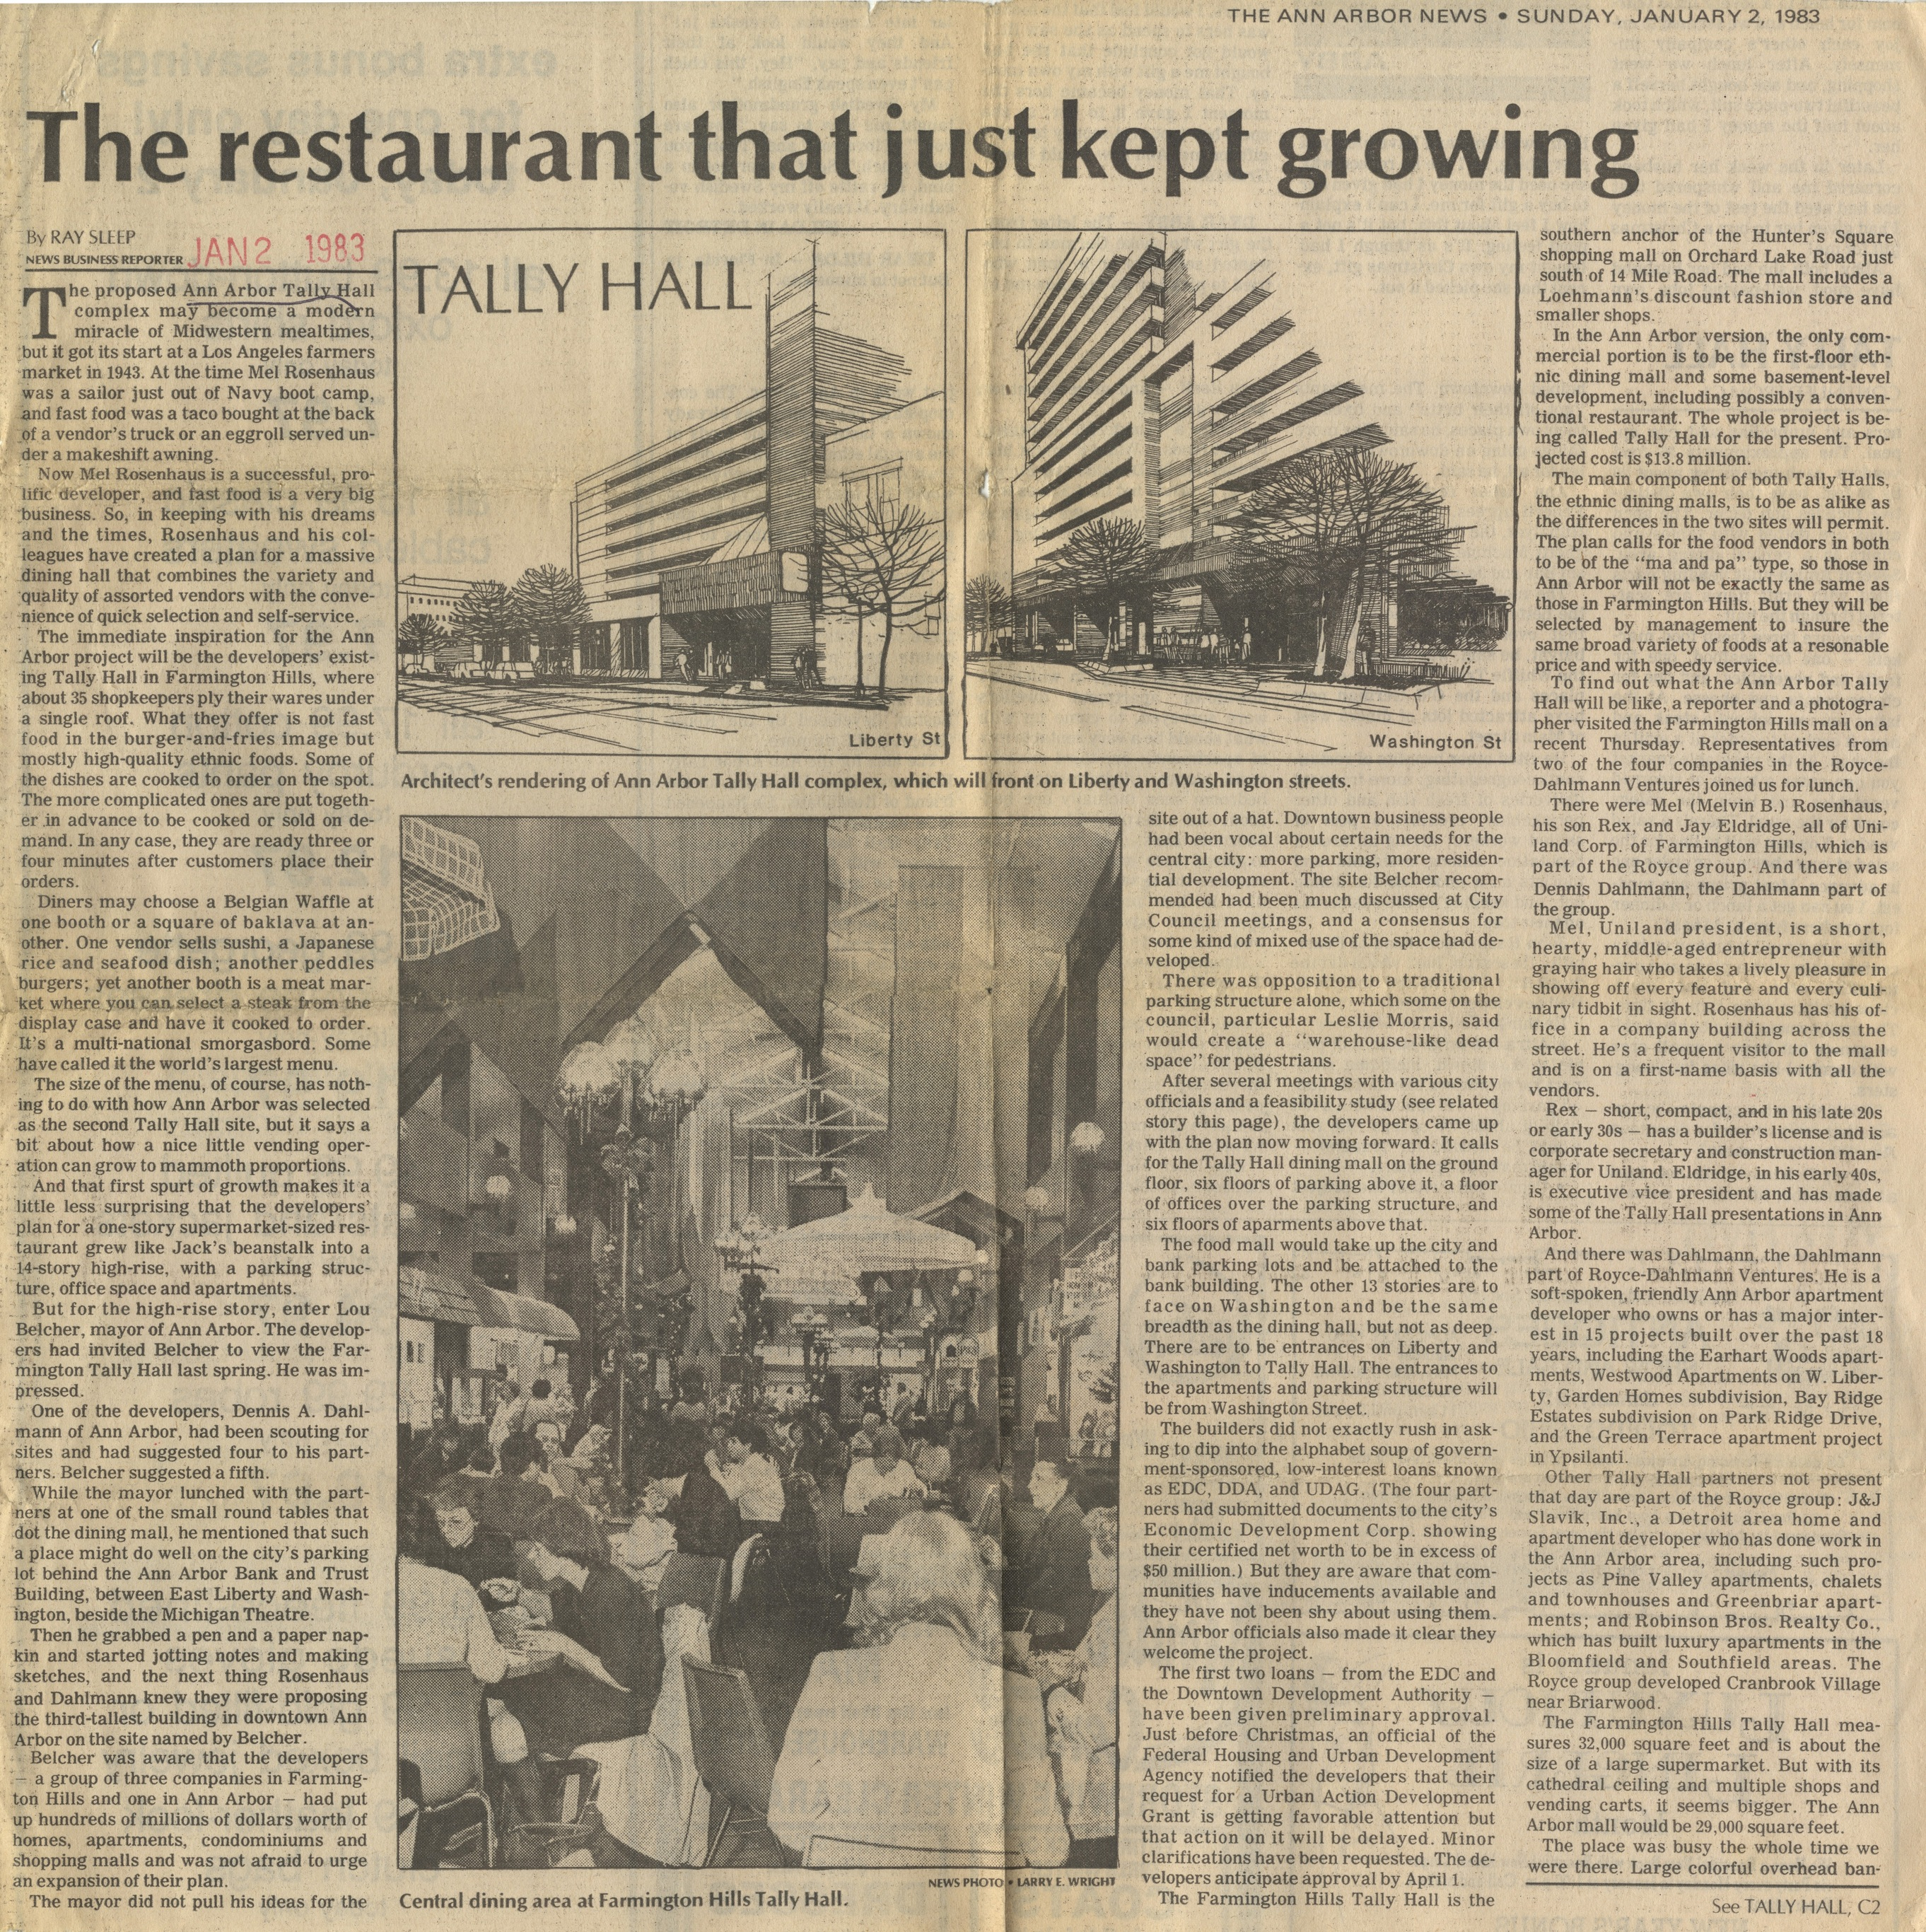 The Restaurant That Just Kept Growing image